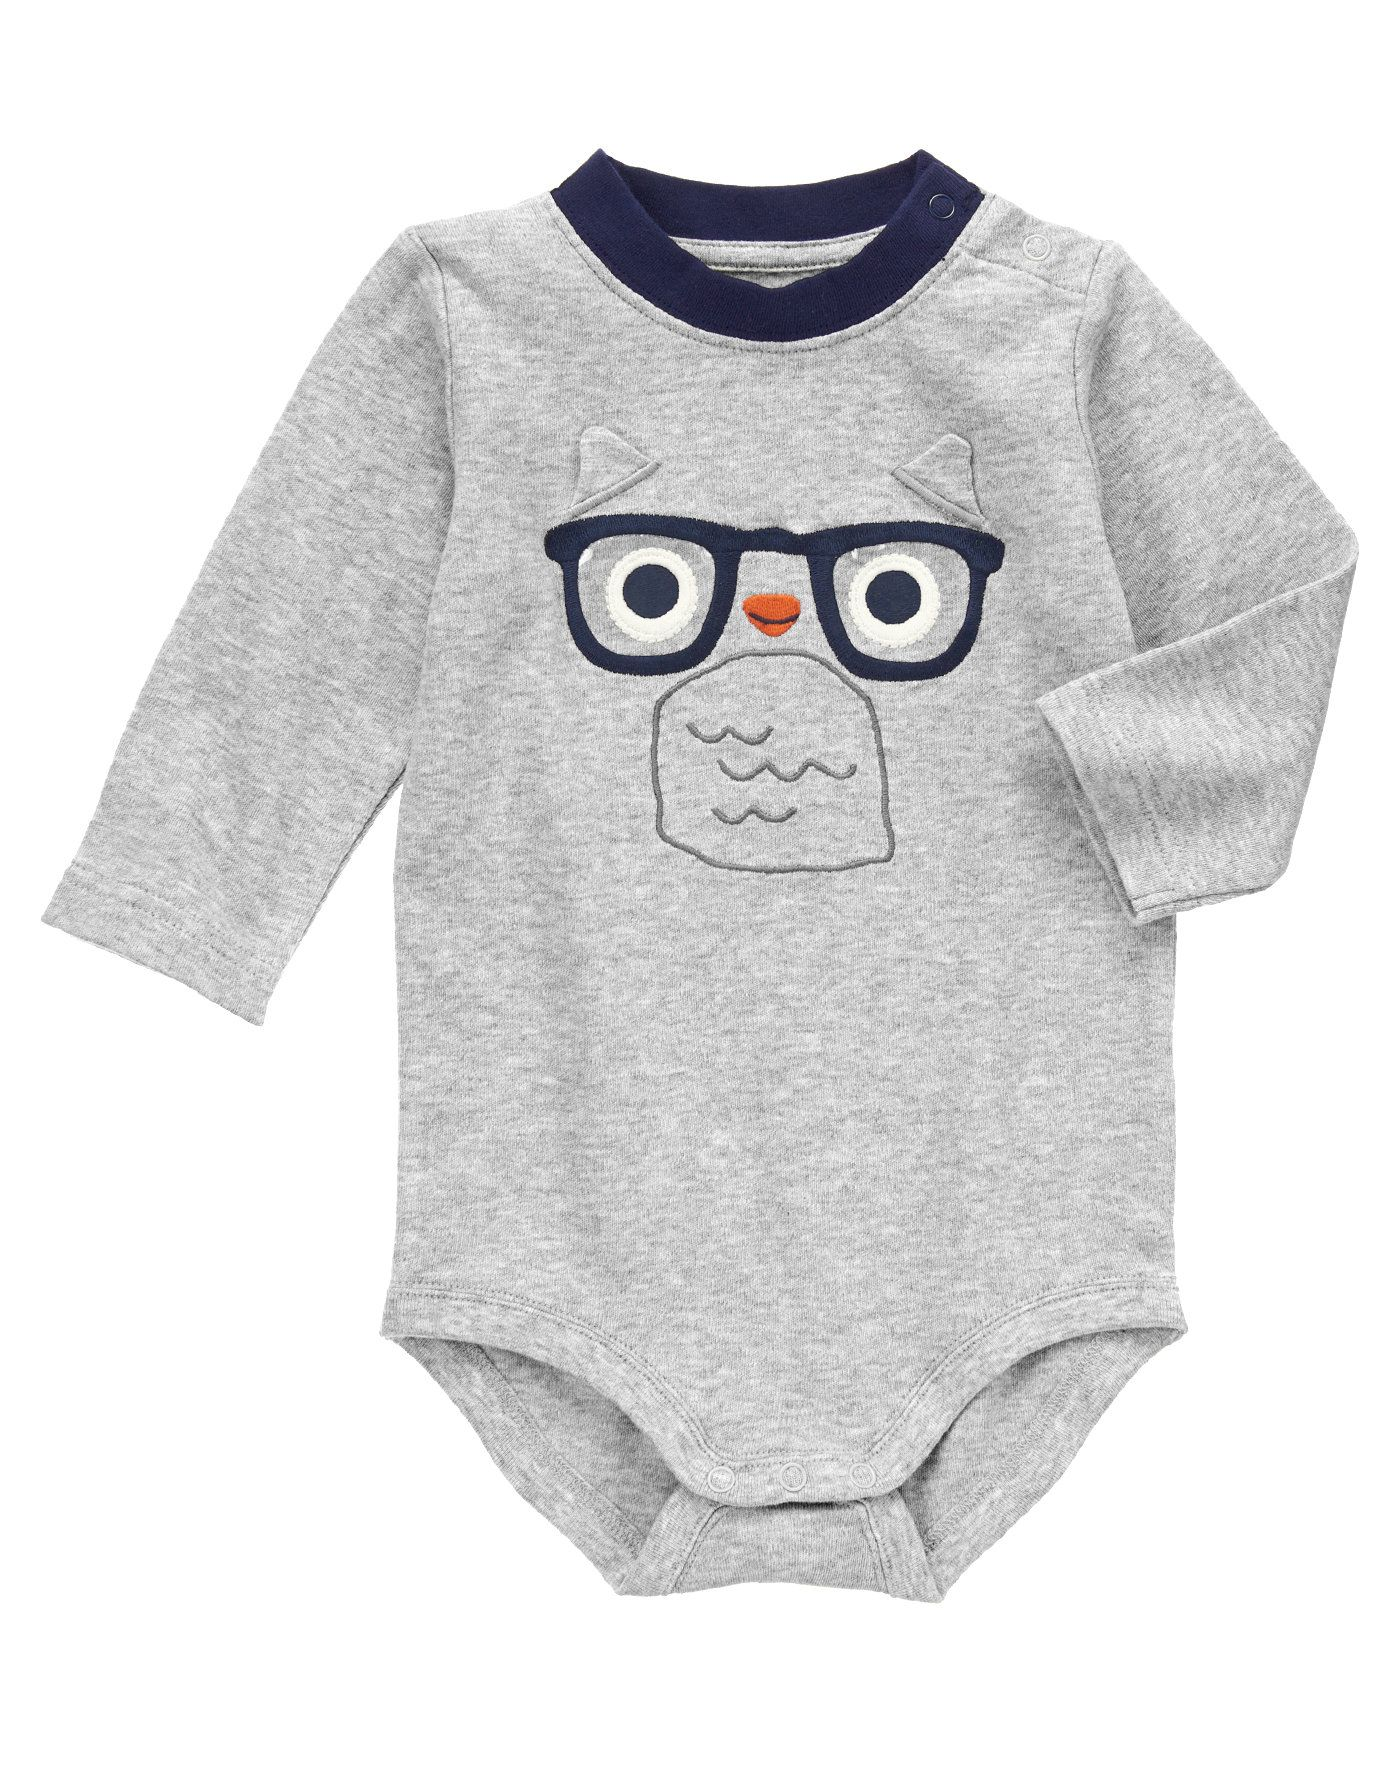 Whoo's there? Fun clear glasses and 3-D ears are featured on our soft bodysuit. Finished with stylish ringer collar.